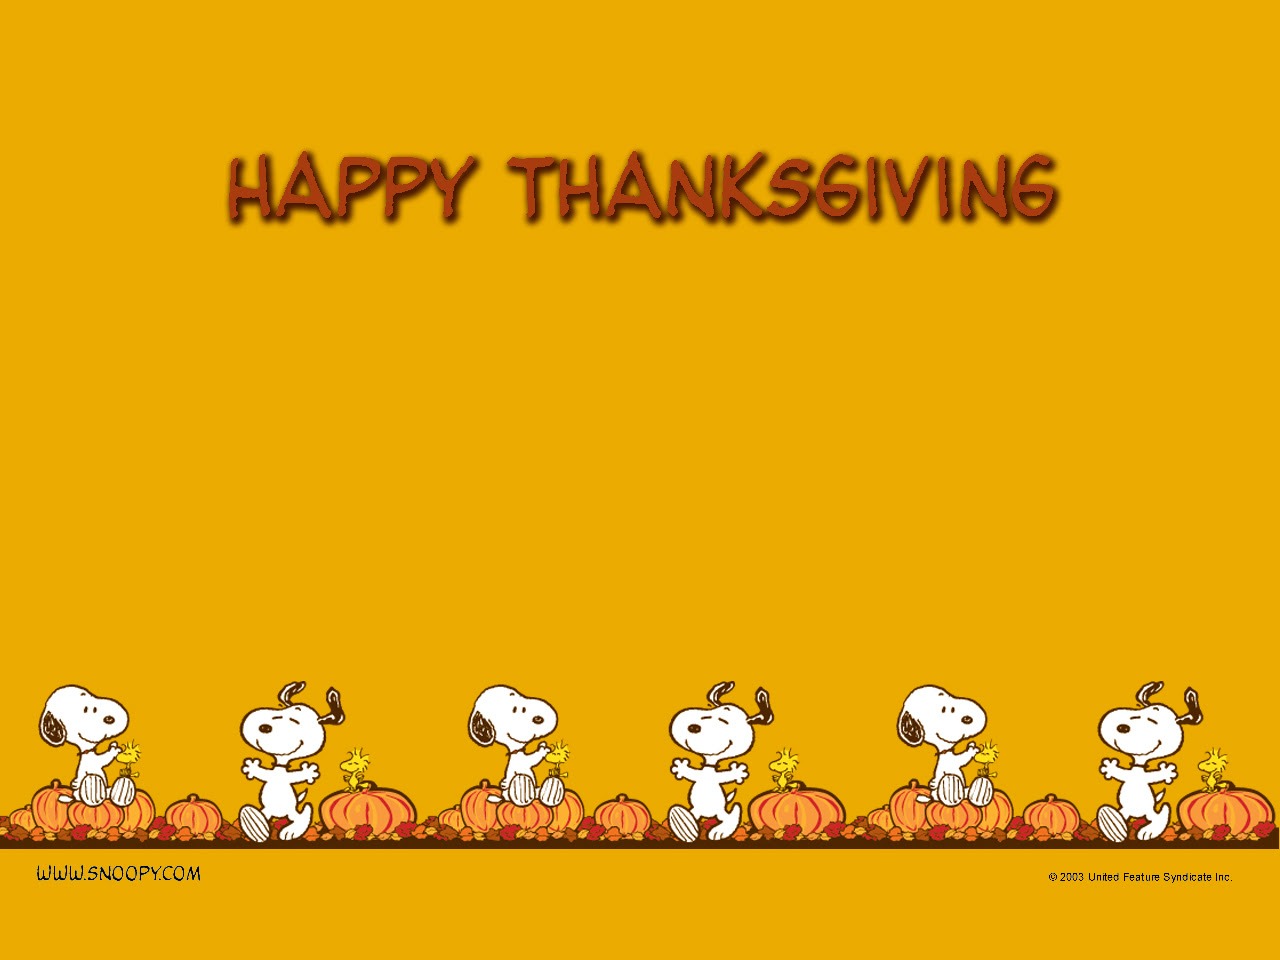 Peanuts Images Thanksgiving Hd Wallpaper And Background Photos 452773